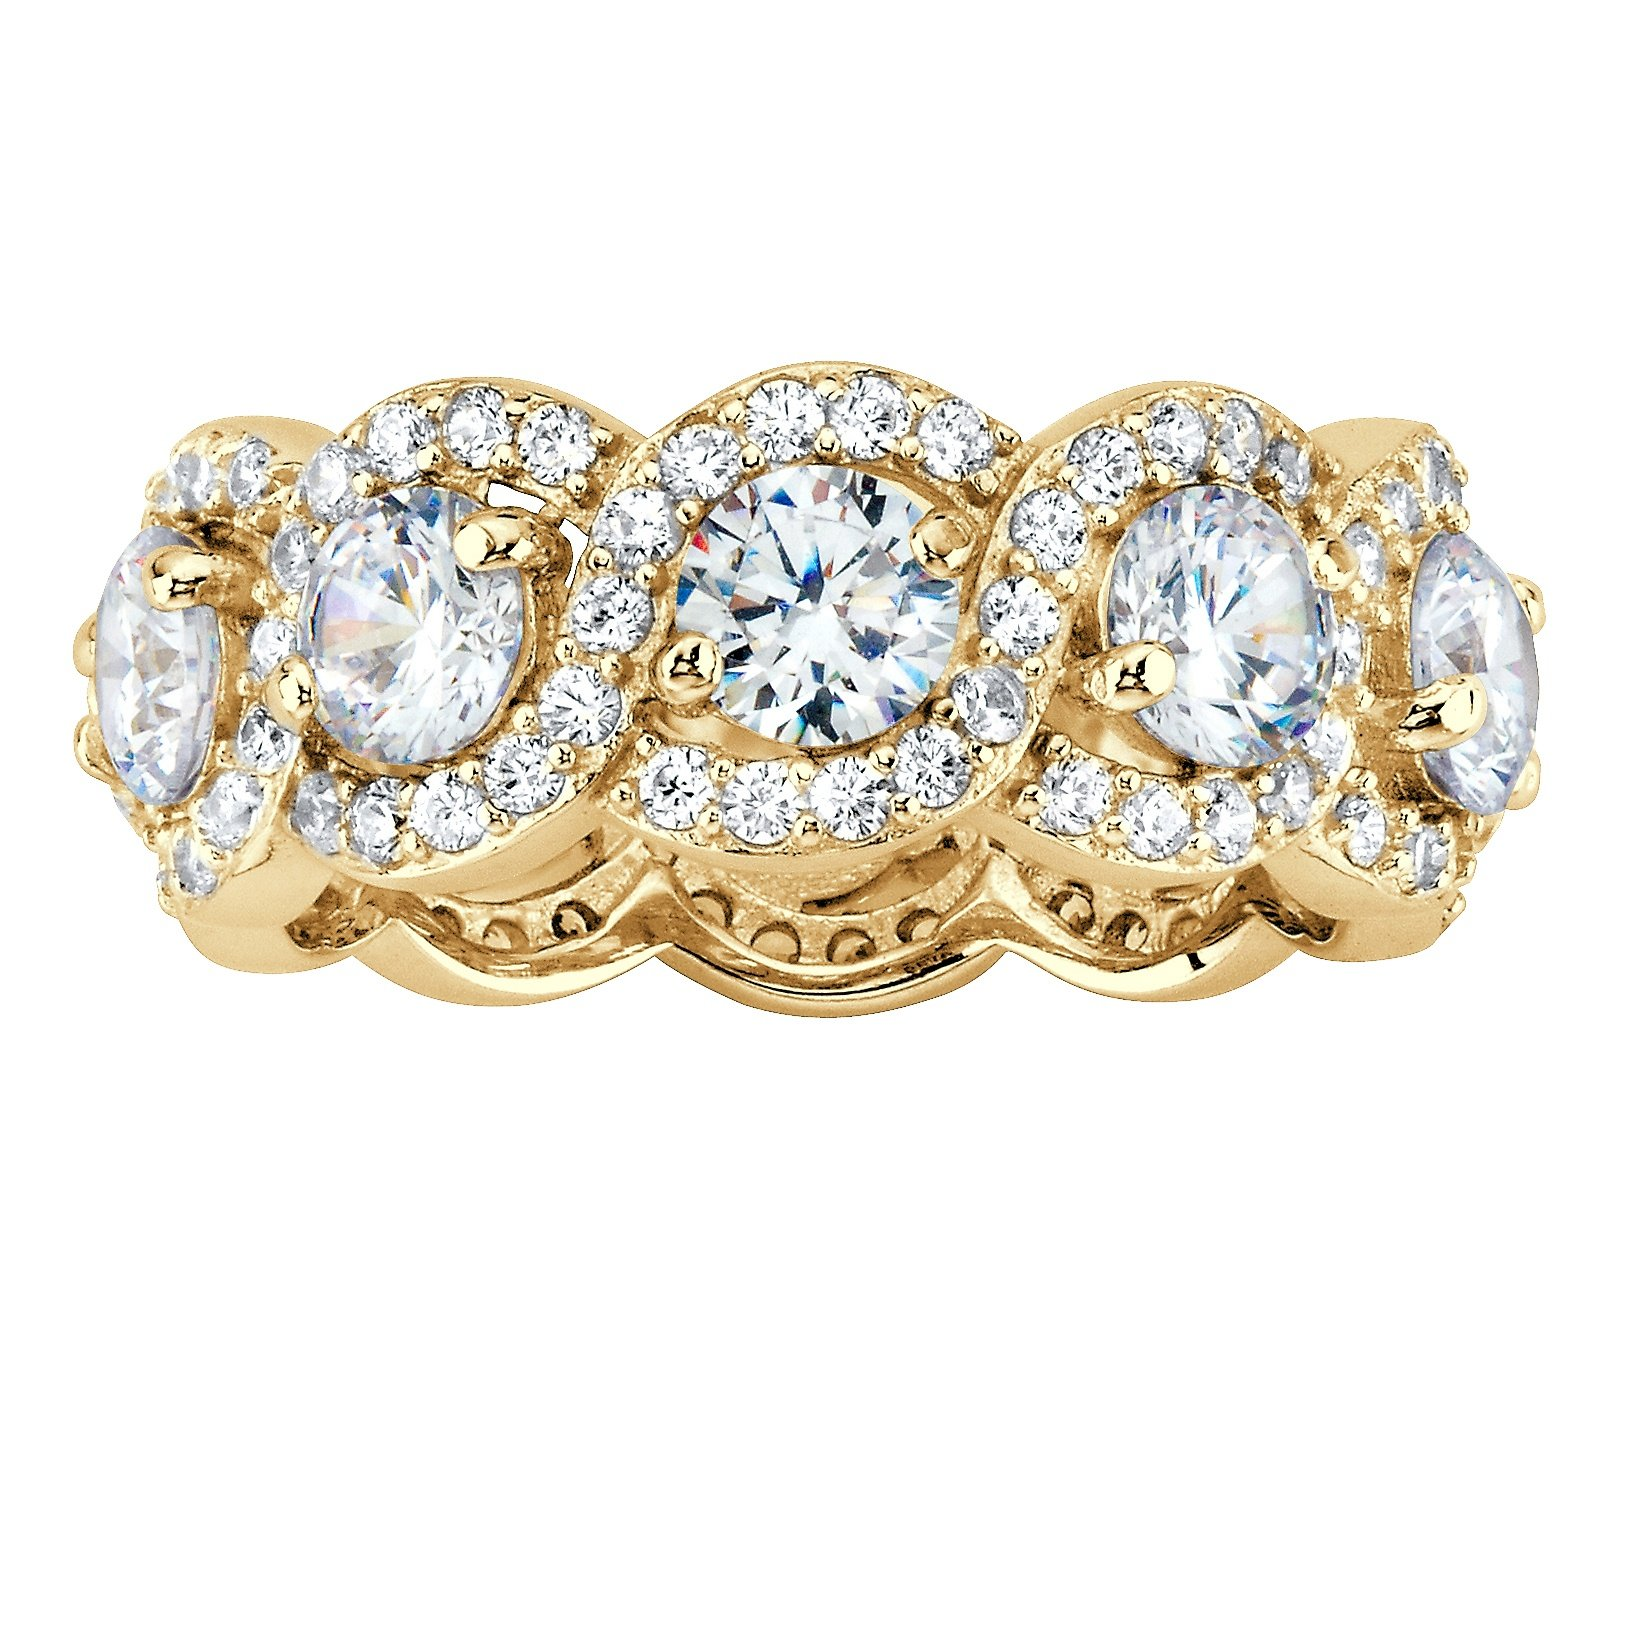 14K Gold over Sterling Silver Round Cubic Zirconia Halo Crossover Eternity Ring Size 7